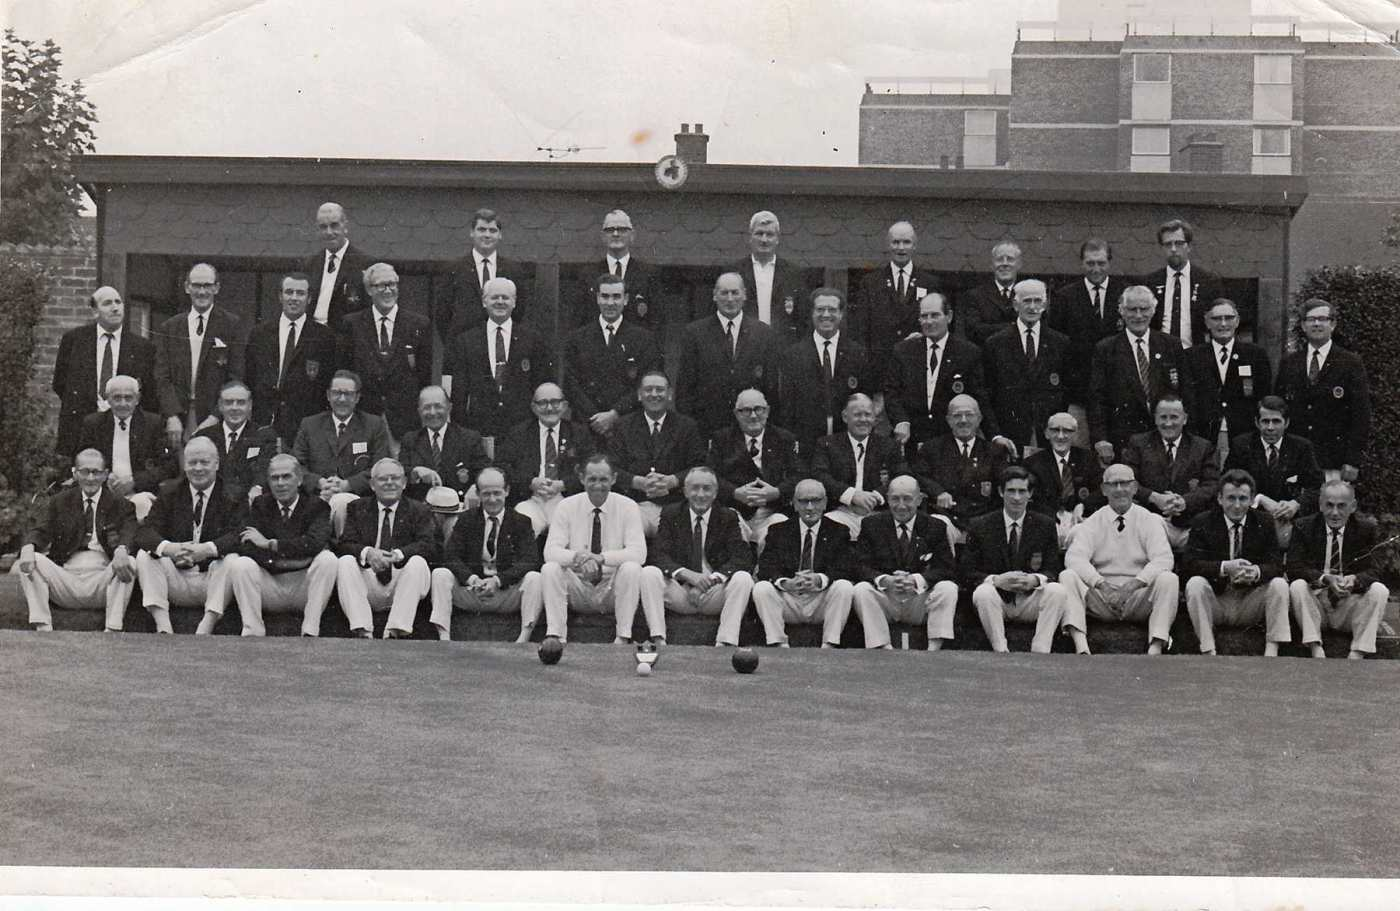 Sth London Bowling Club 1970 a